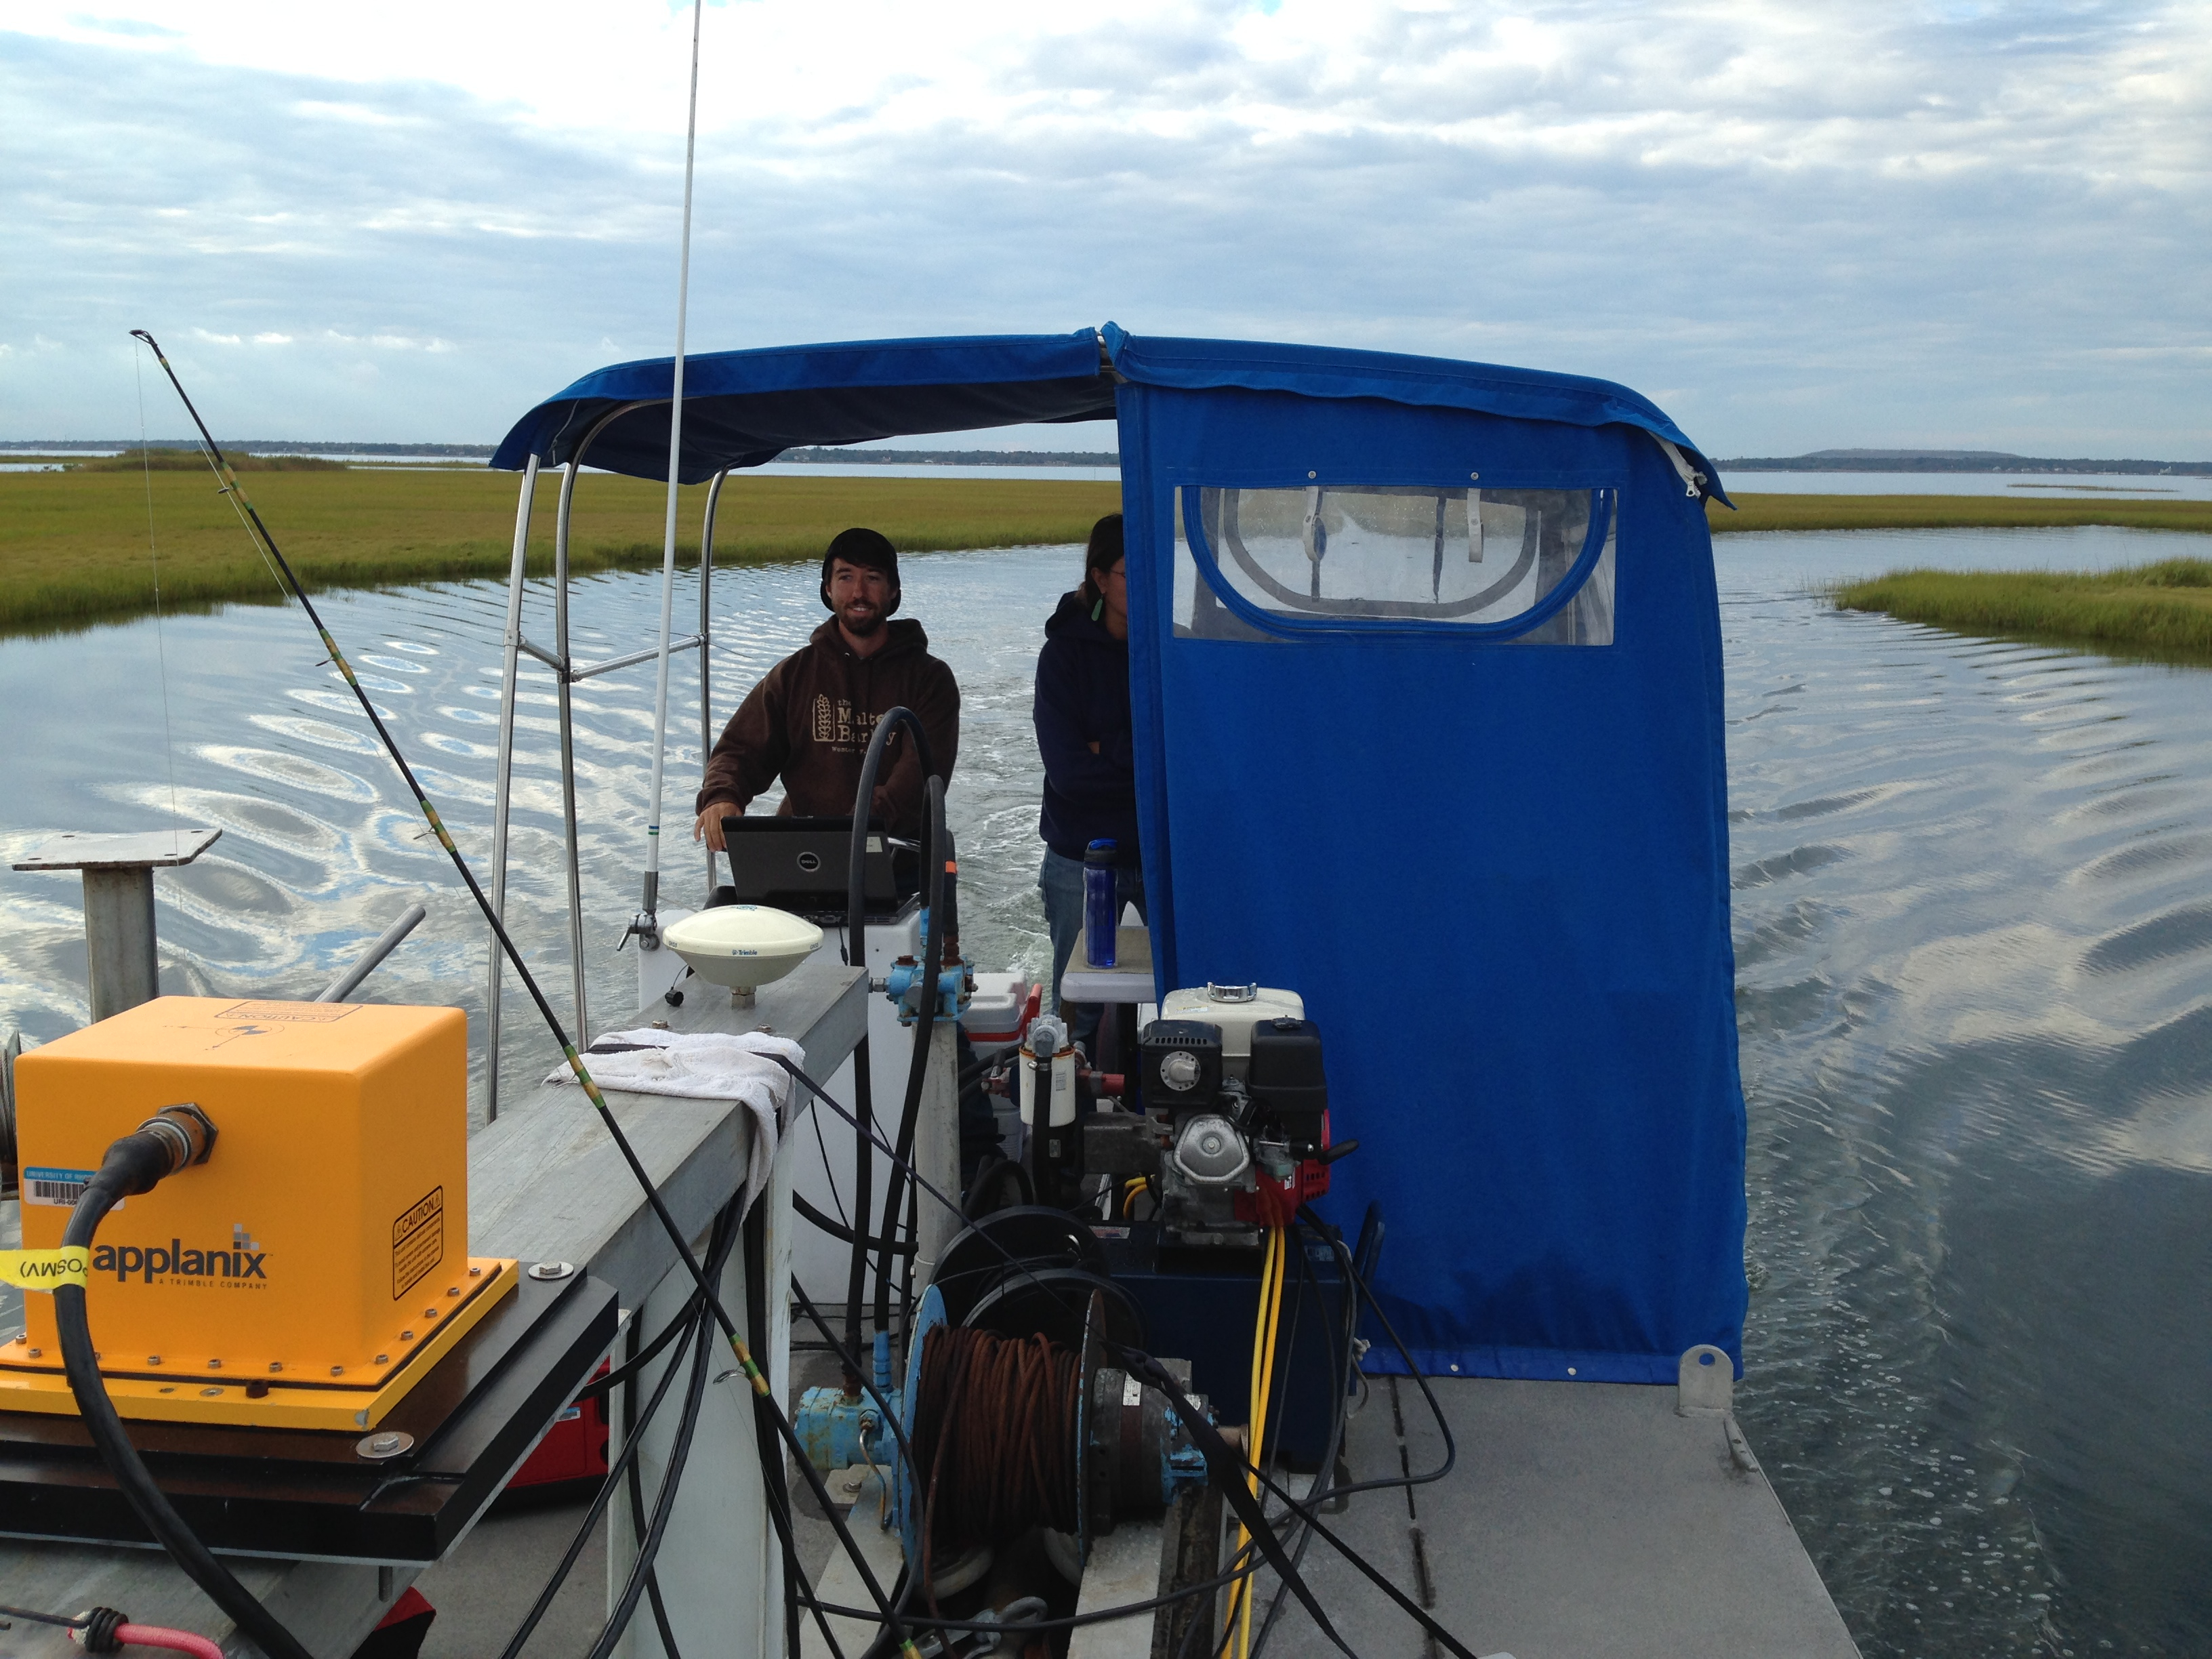 Dr. King's Fire Island team cruises aboard a stark 28-foot pontoon boat. An hour or so before dawn, they set up their gear. Then, for twelve hours straight, they drift through Long Island's Great South Bay at speeds of five knots or less to collect data.